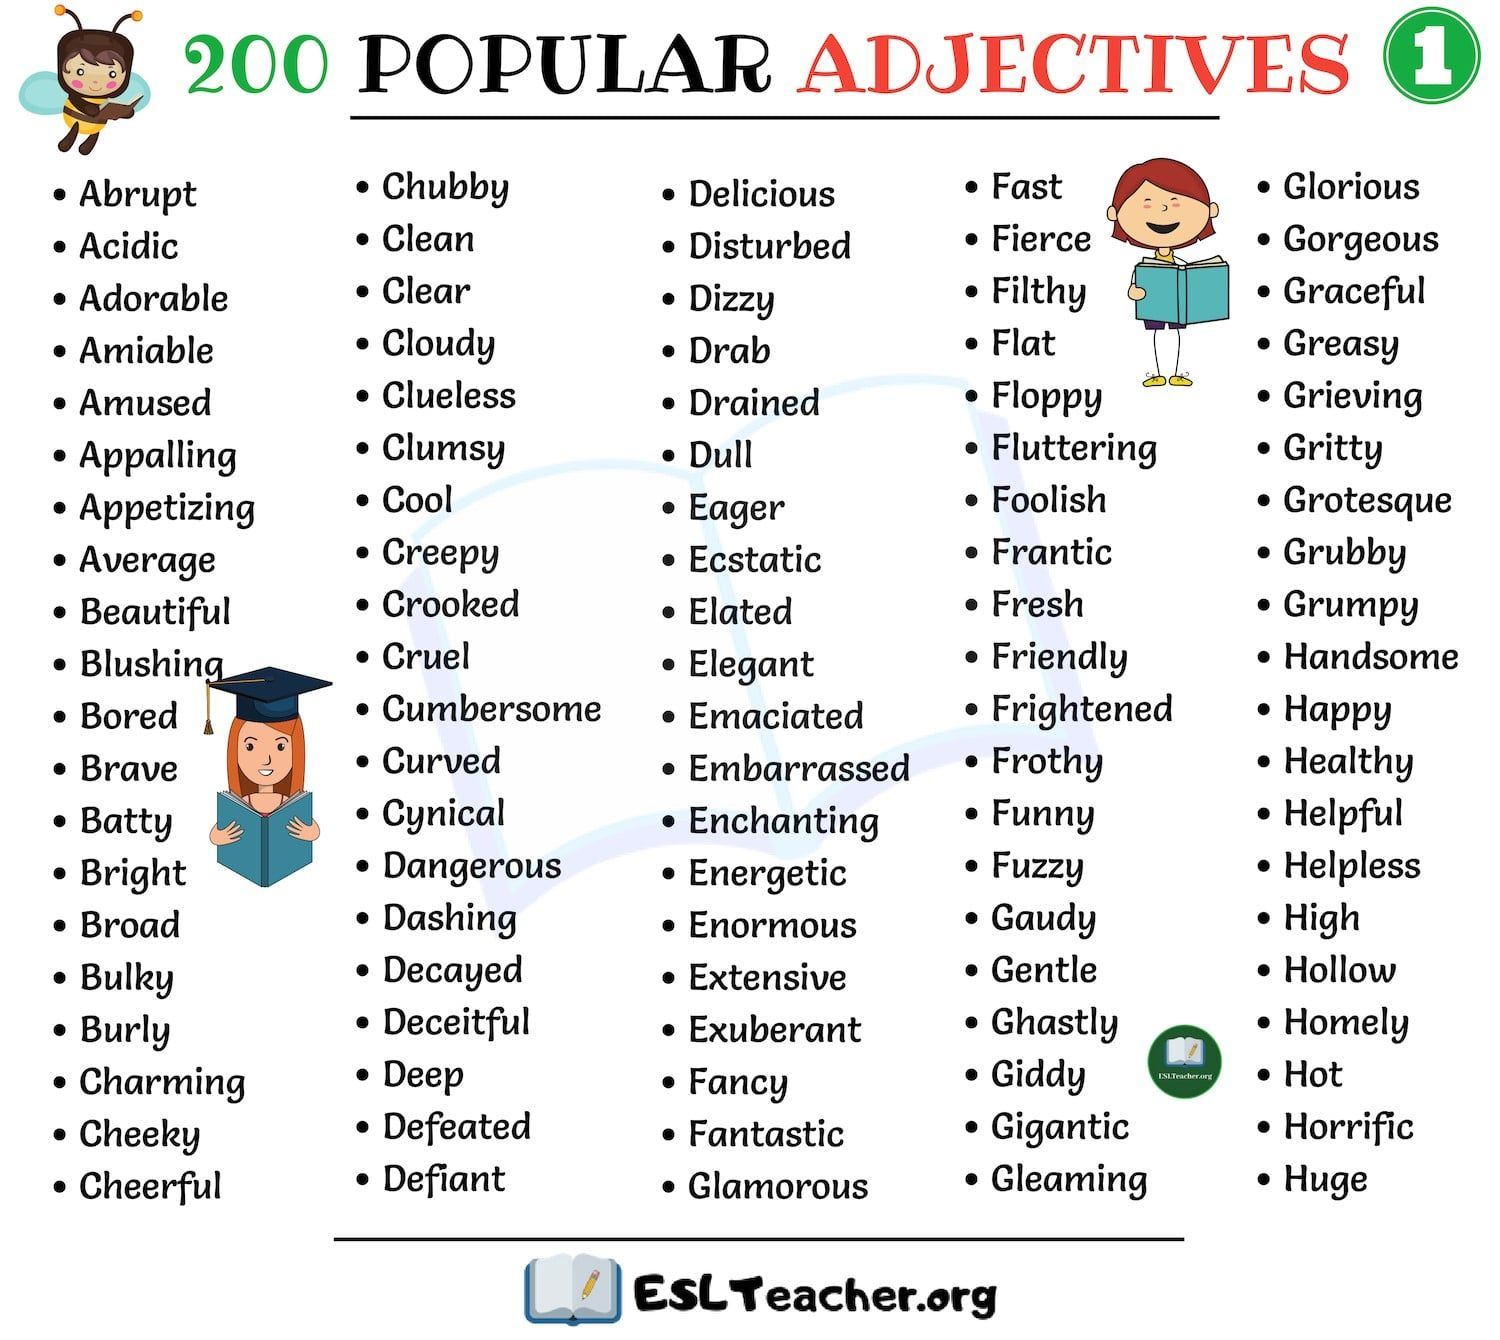 List Of Adjectives 200 Popular Adjectives In English With Images